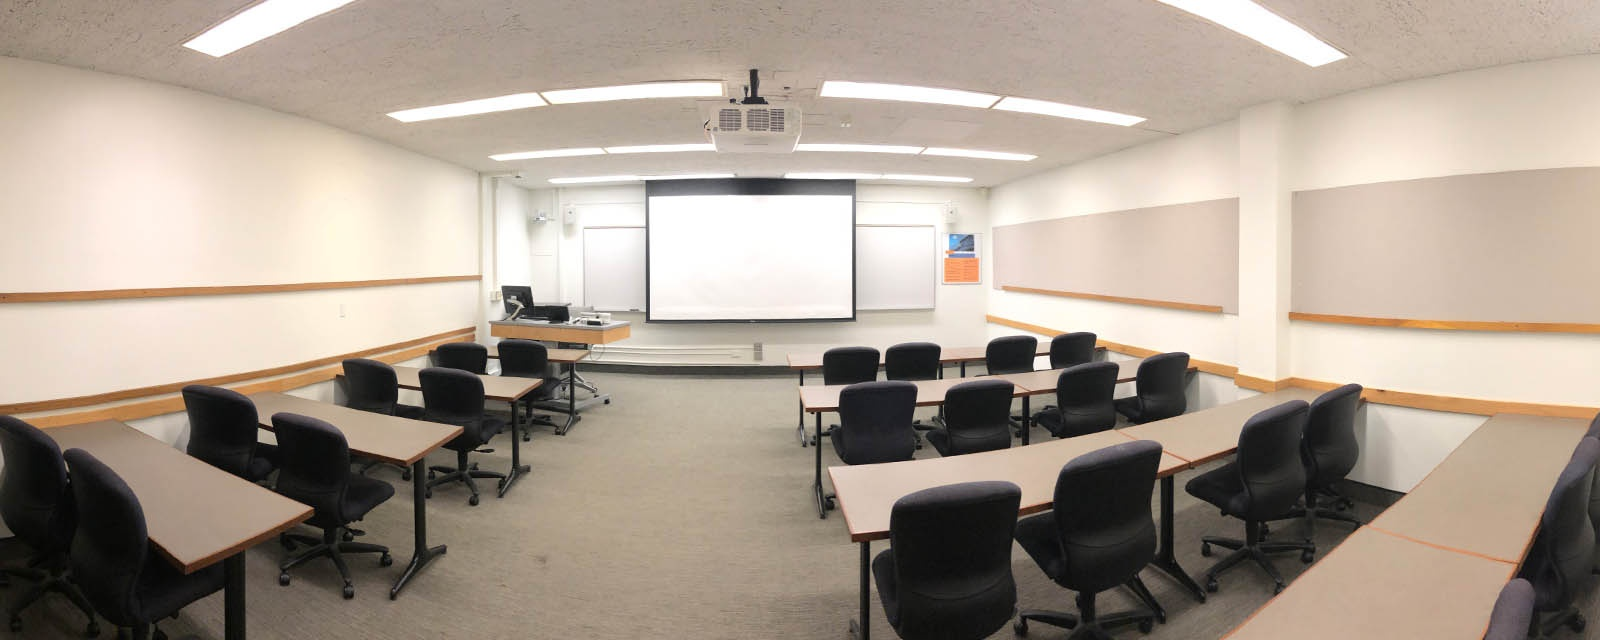 Panorama room 212 student view, movable chairs, teaching station front right